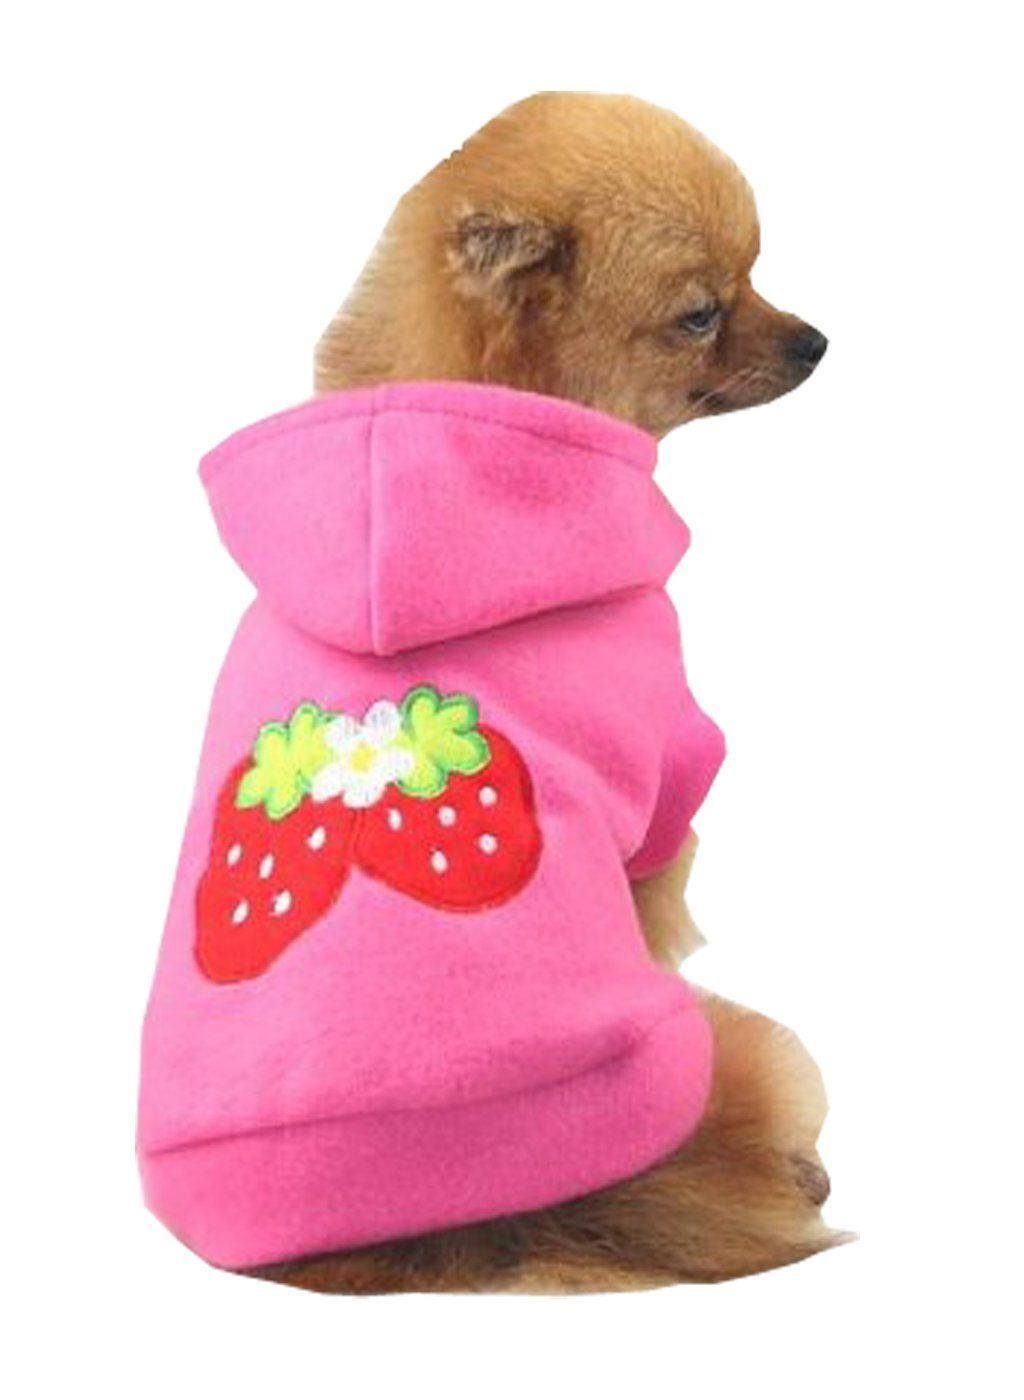 Small Strawberry Dog Cat Puppy Fleece Hoody Clothes Pet Apparel Dress Up Pet Supplies By Accessorybee Amazon Co Small Dog Clothes Puppy Coats Puppy Clothes